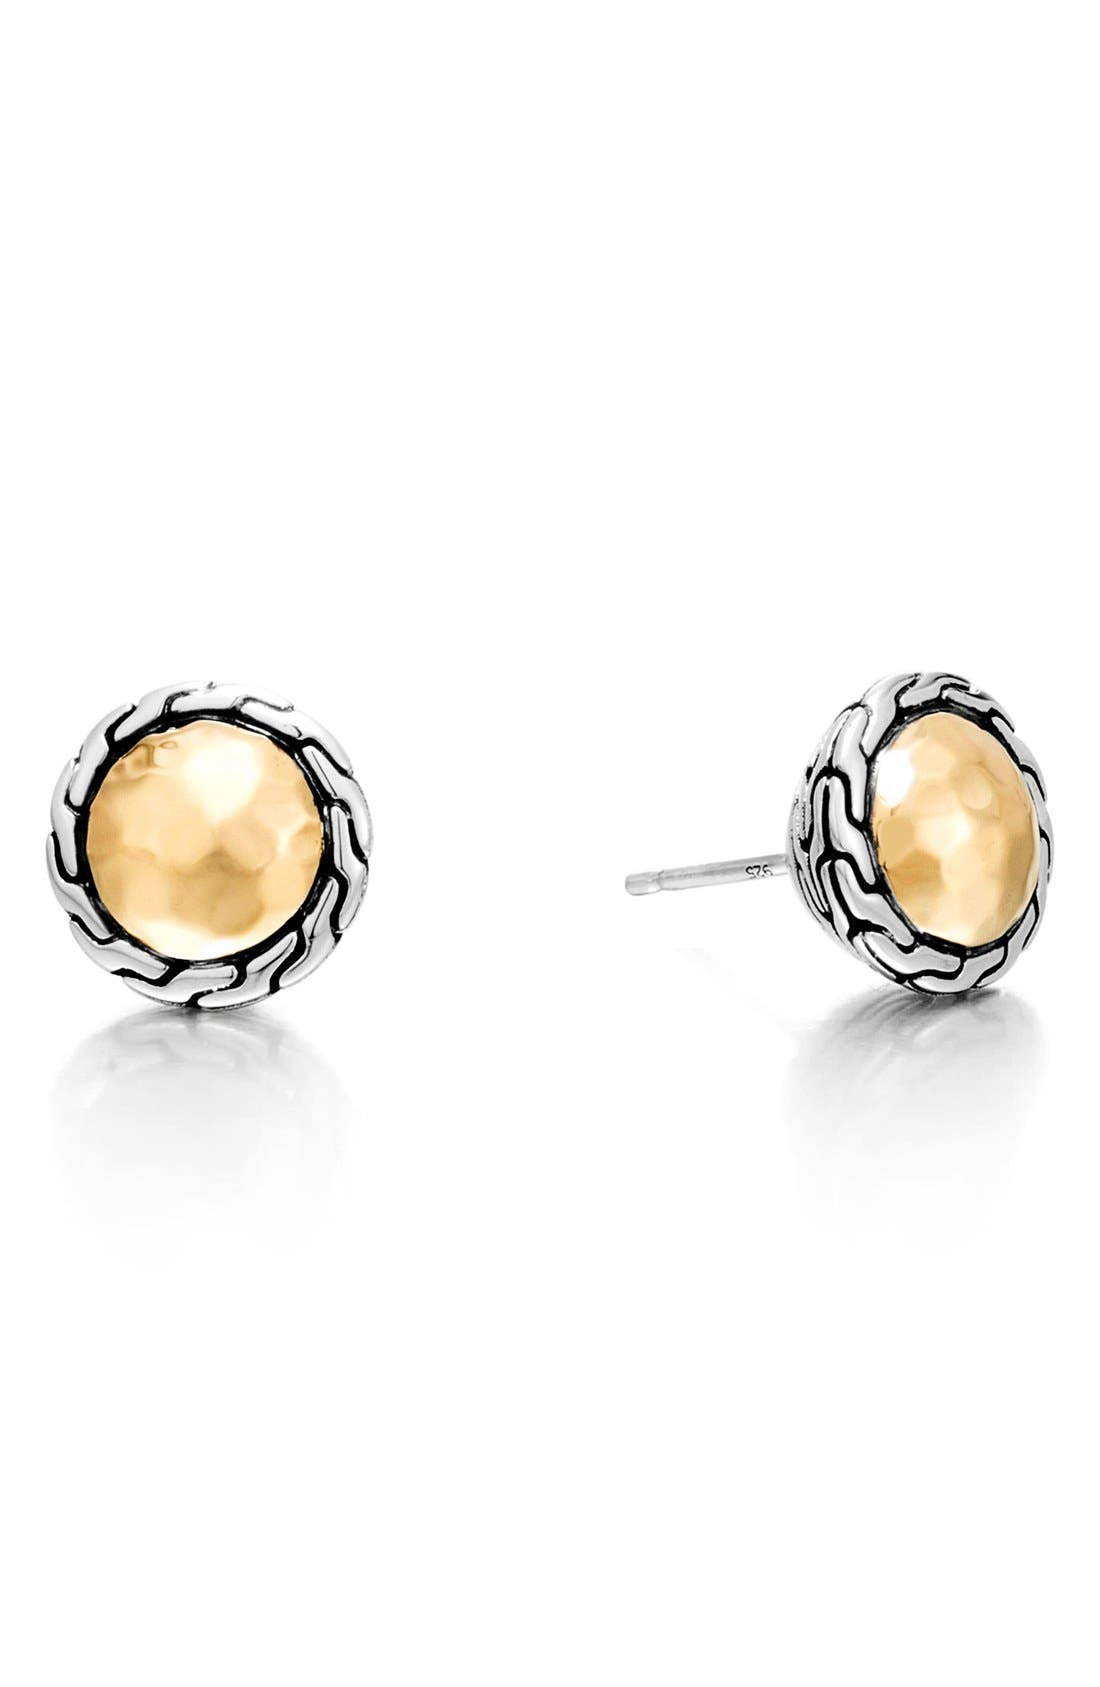 Classic Chain Hammered Stud Earrings,                             Main thumbnail 1, color,                             SILVER